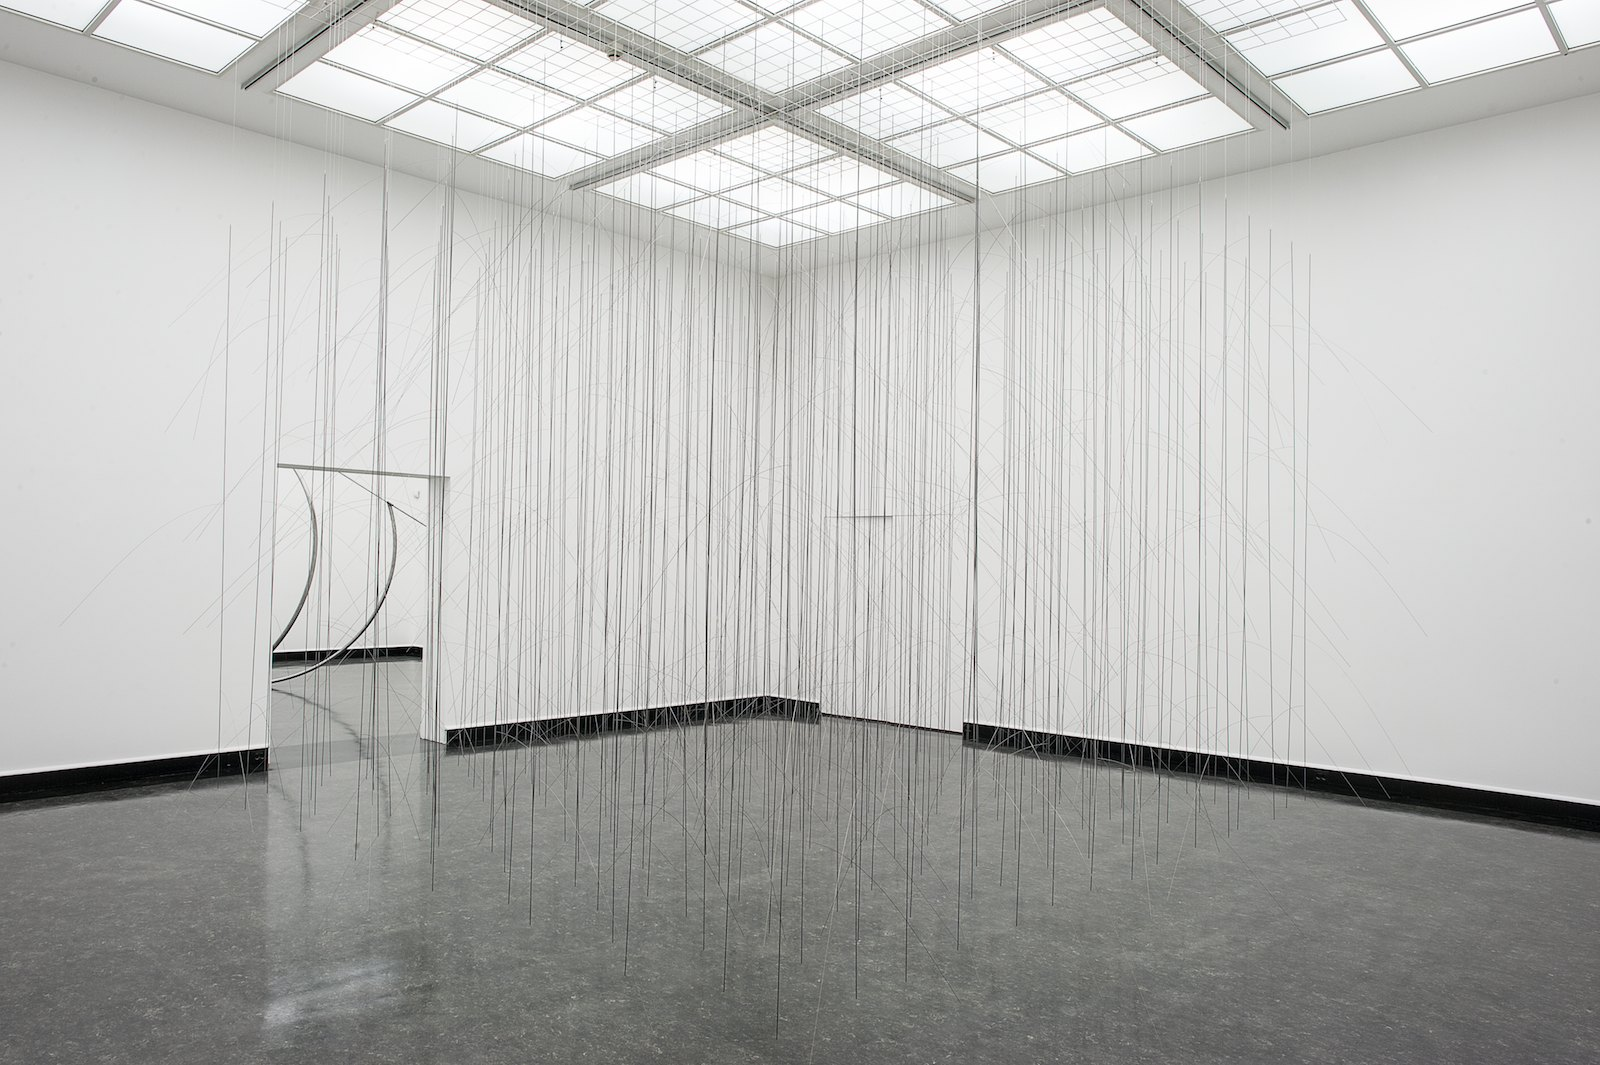 Muster III, 2014, steel and spring wire, 320 x 420 x 420 cm. Installation view, Tone Vigeland, Muster, Bergen Kunsthall, 2014. Photo: © Bergen Kunsthall